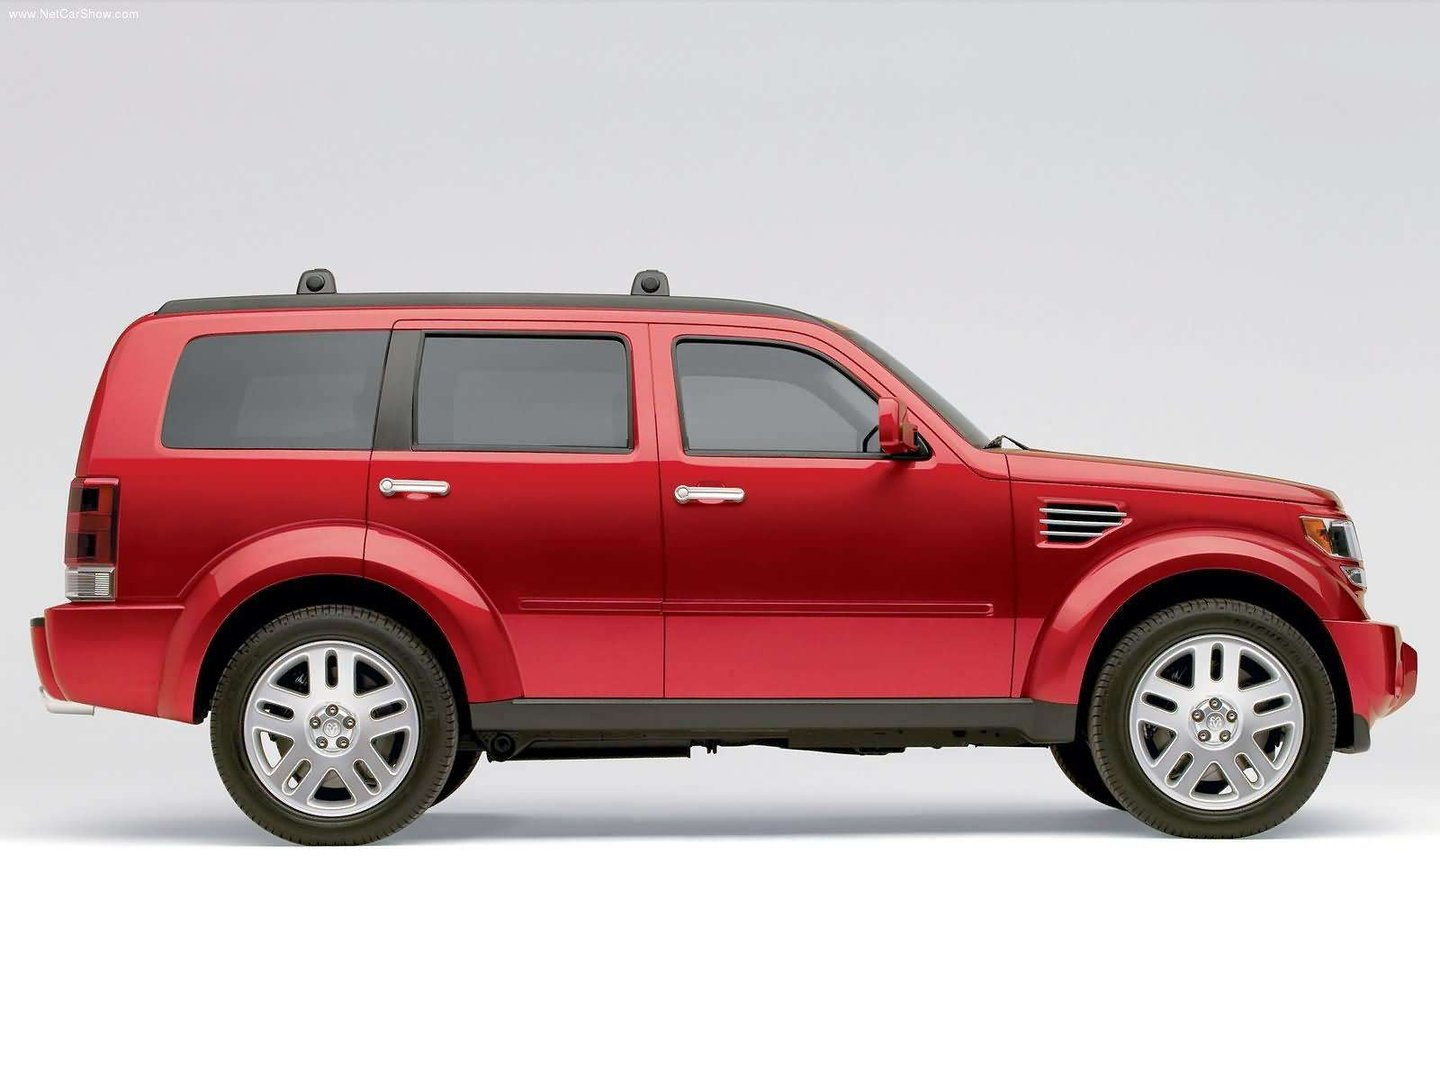 Dodge-Nitro_Concept_2005_1600x1200_wallpaper_09.jpg